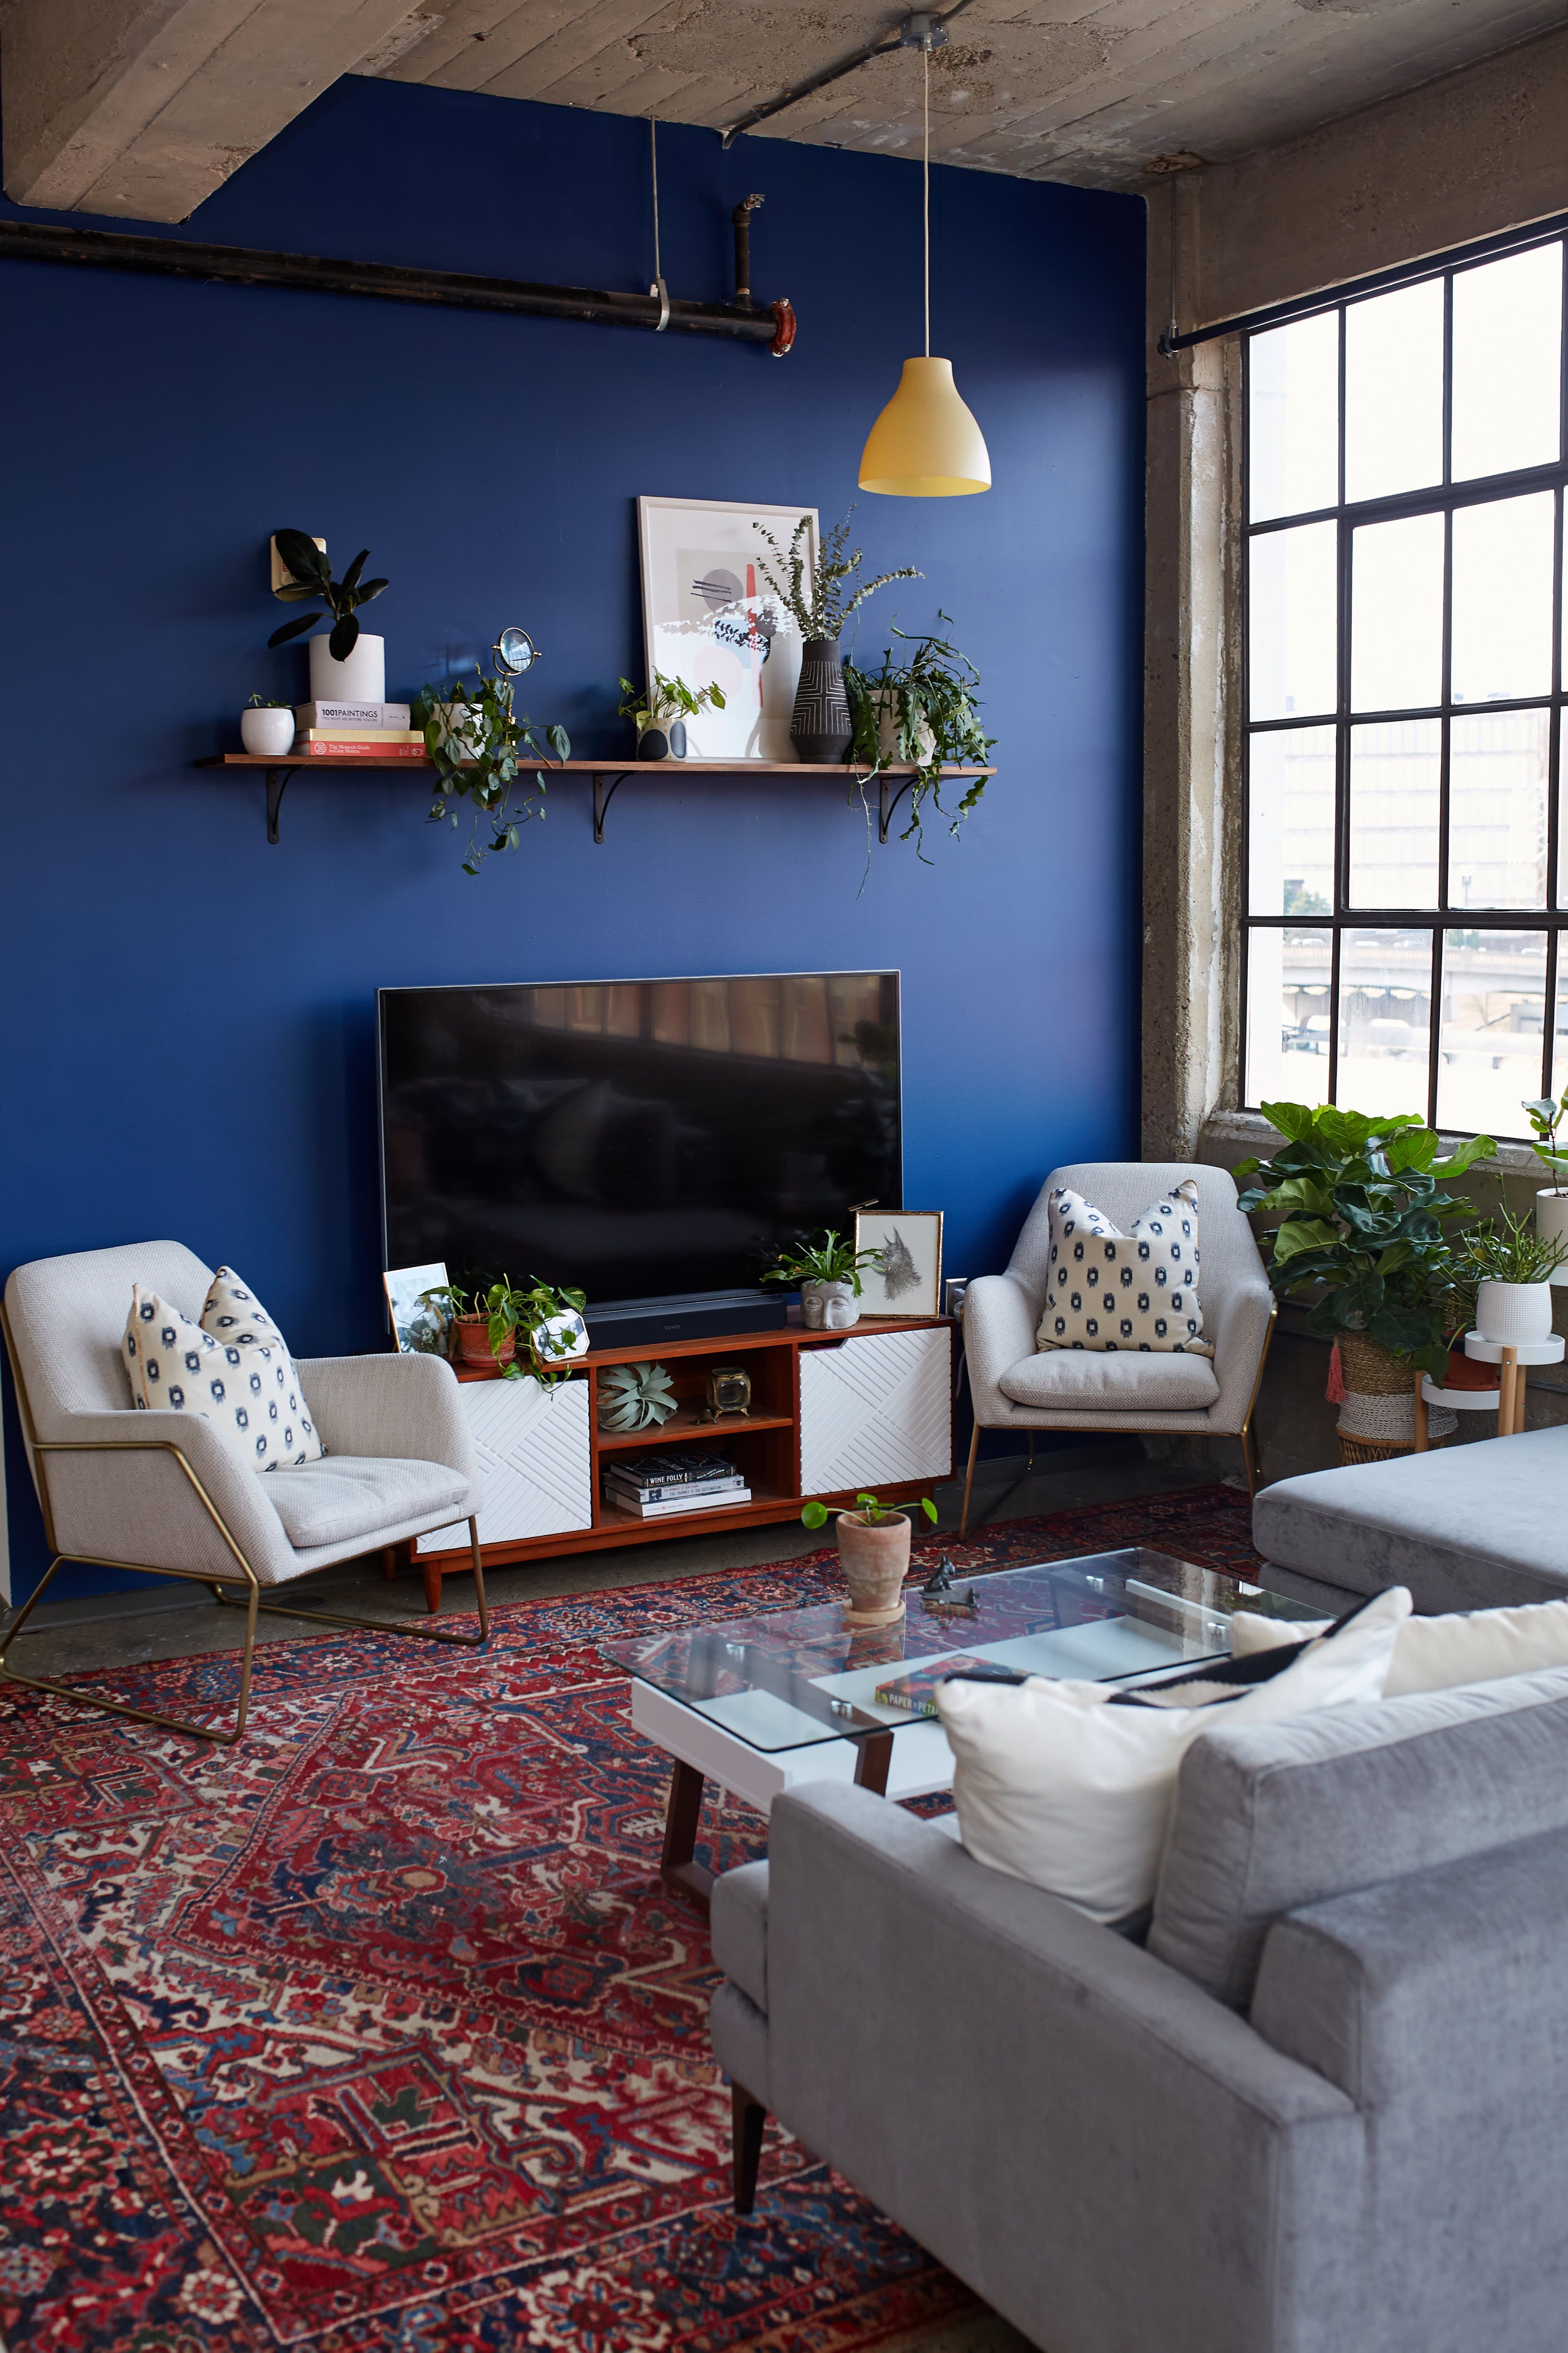 A Bold Blue Accent Wall Is Just One Of The Beautiful Things About